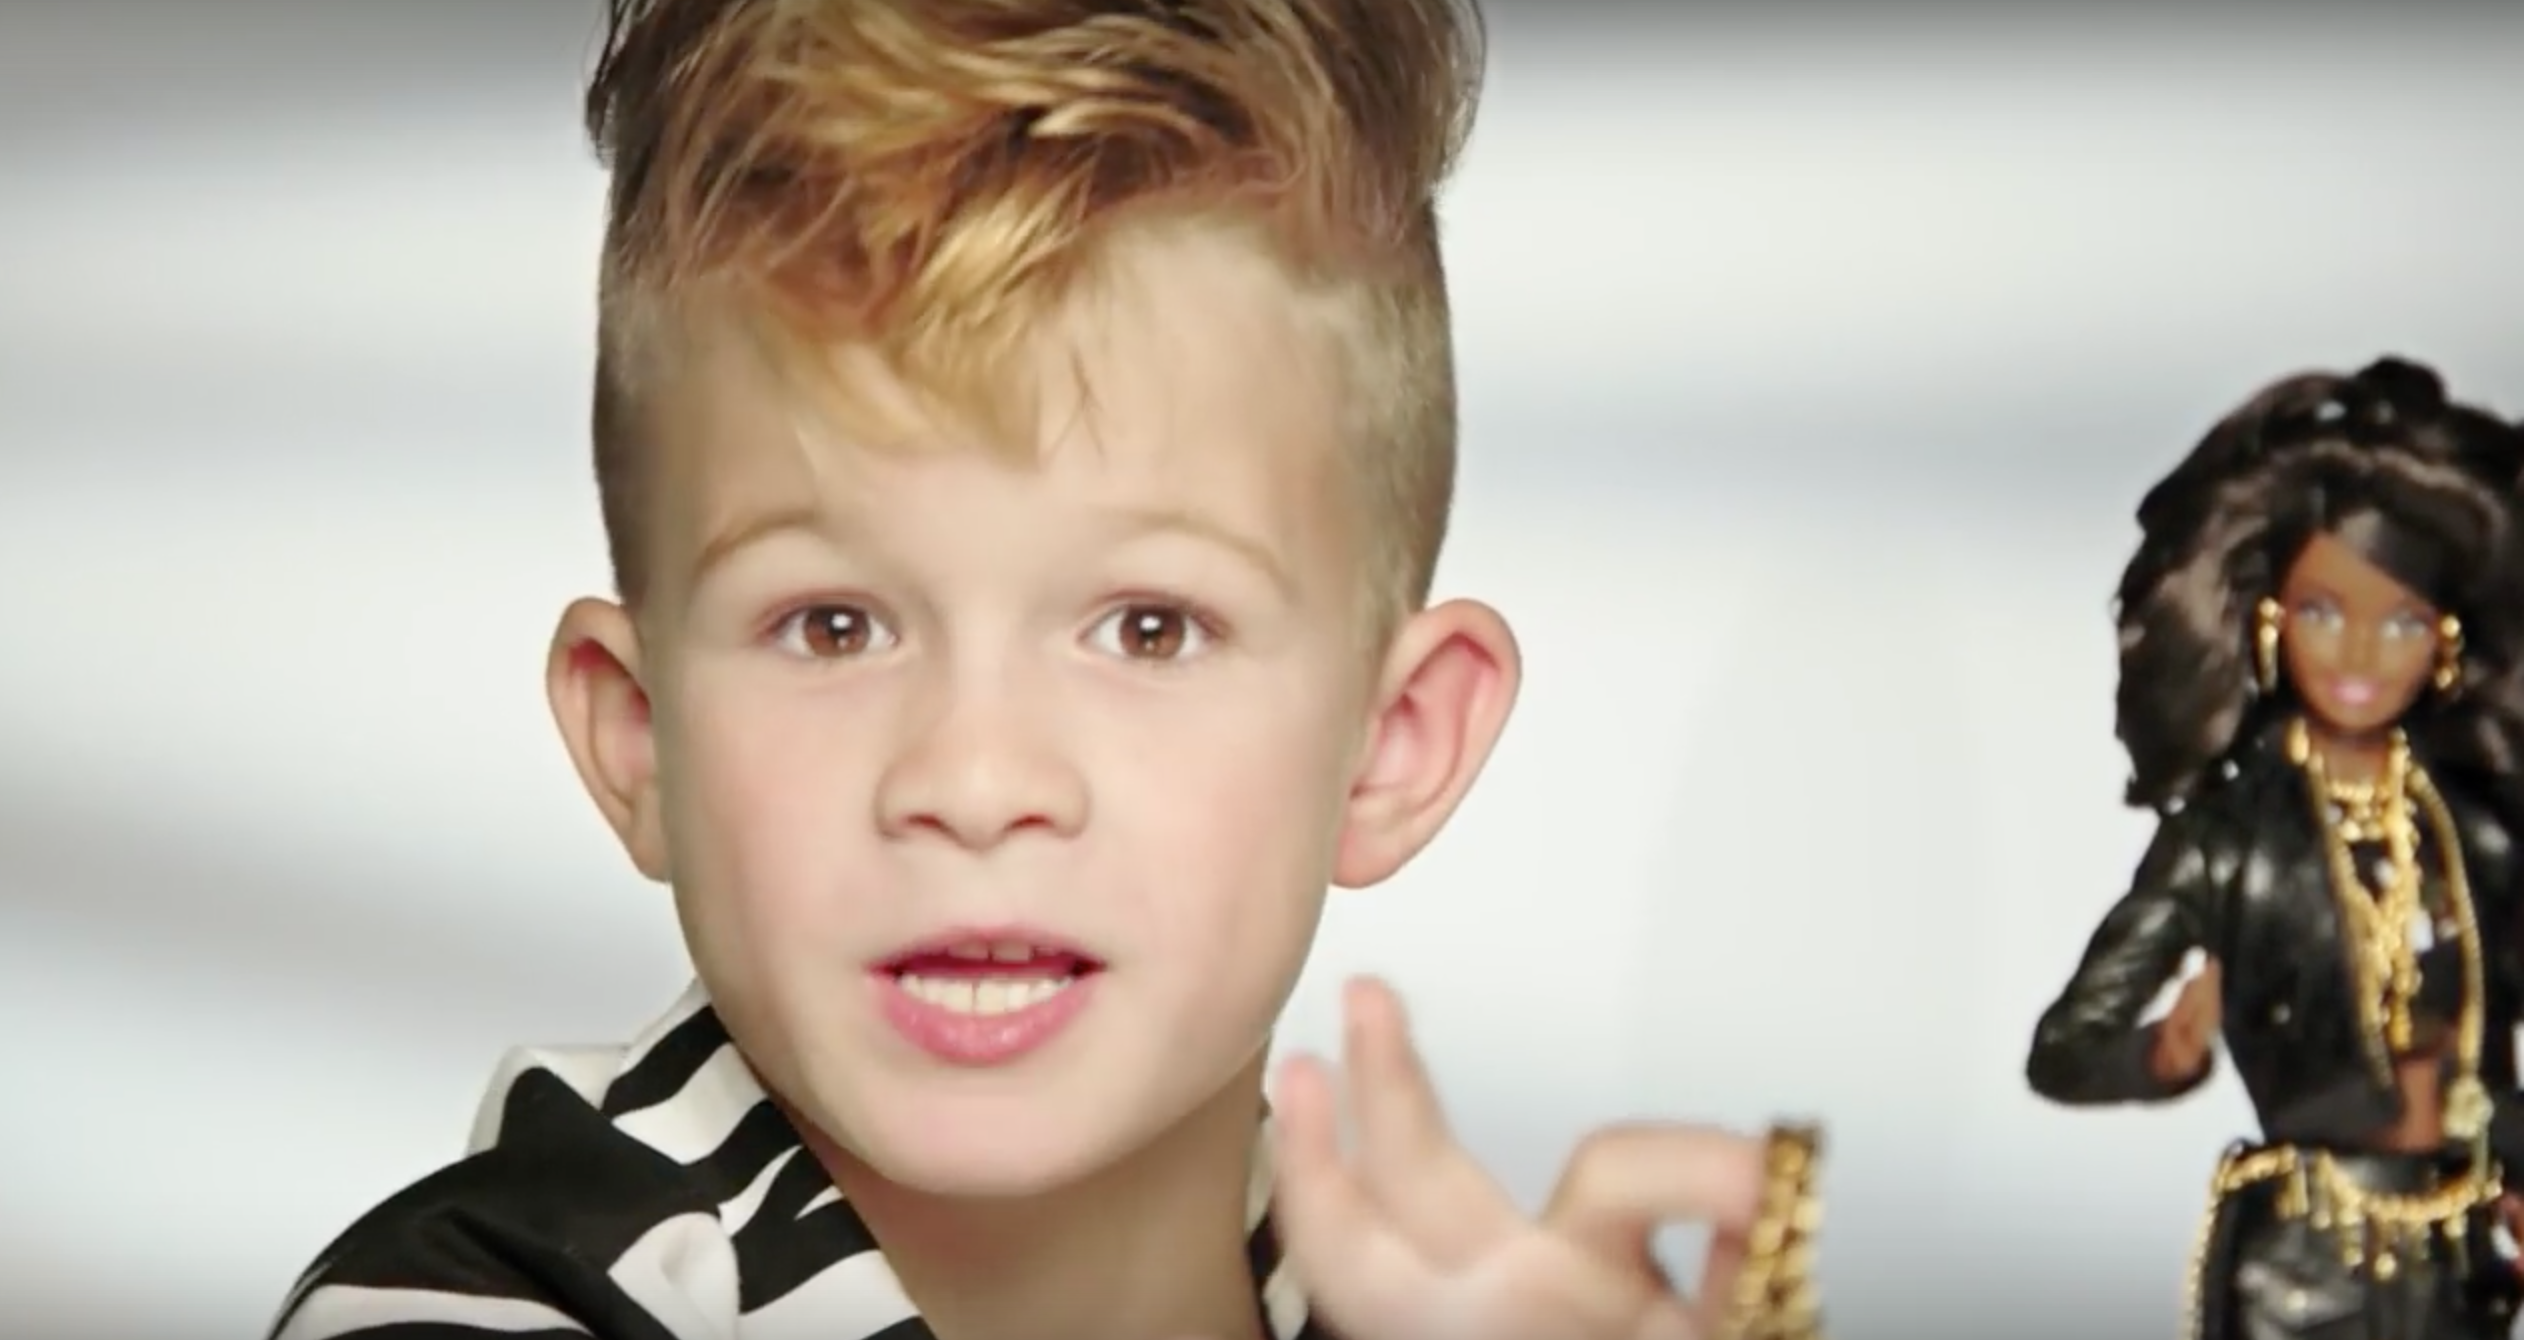 Eerste jongen in Barbie commercial